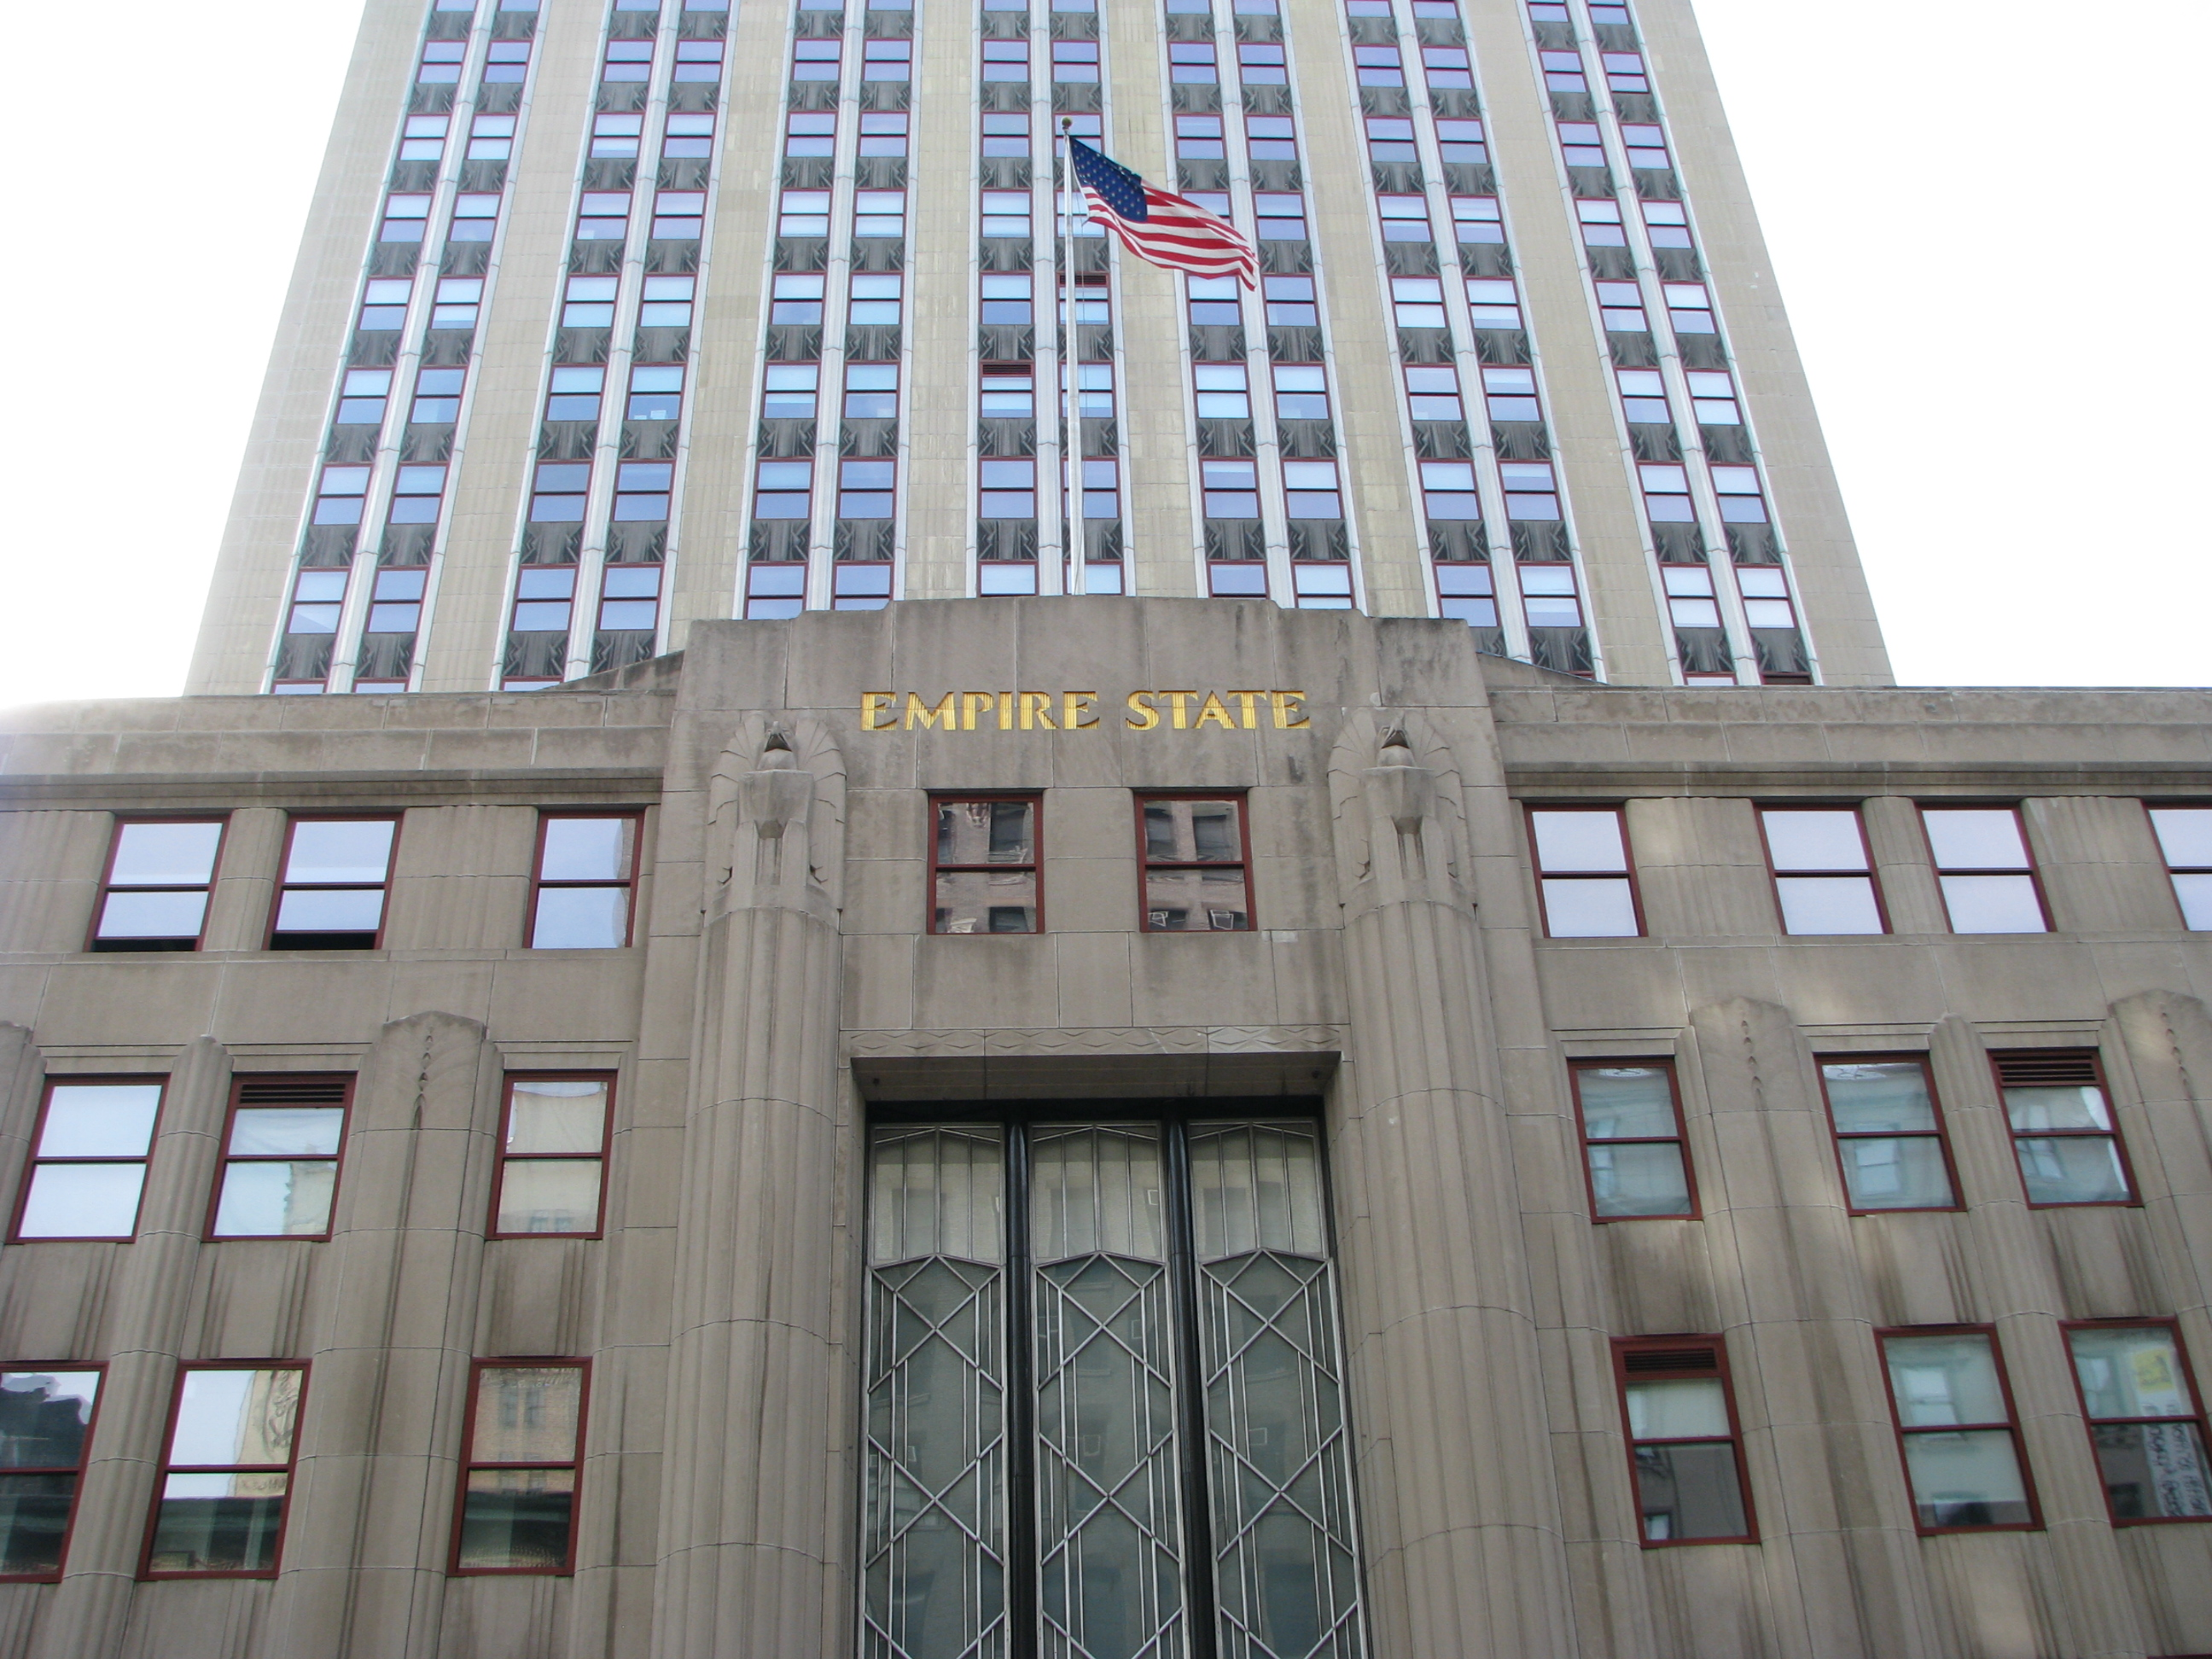 File:Empire State Building front entrance.JPG - Wikimedia ...